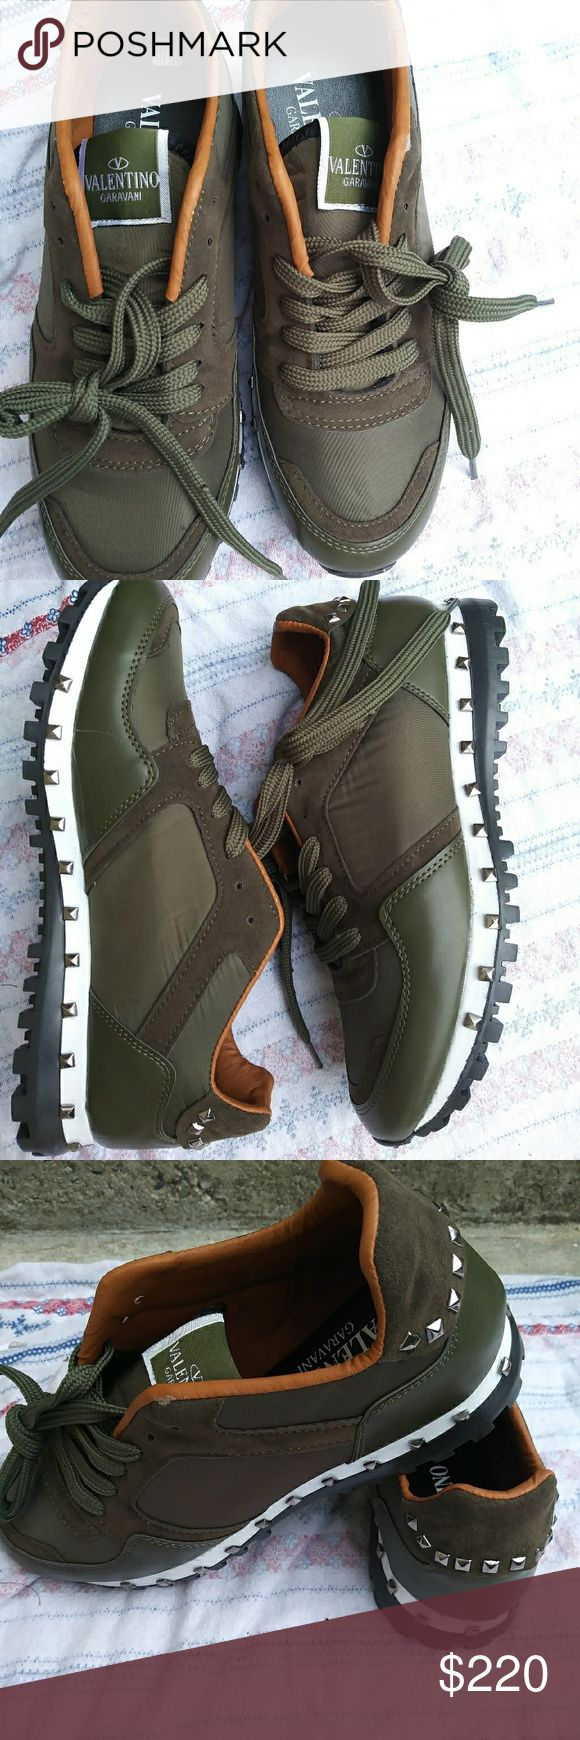 VALENTINO studded sneaker Valantino studs sneakers. Size 7.5/8 valentino Shoes Sneakers